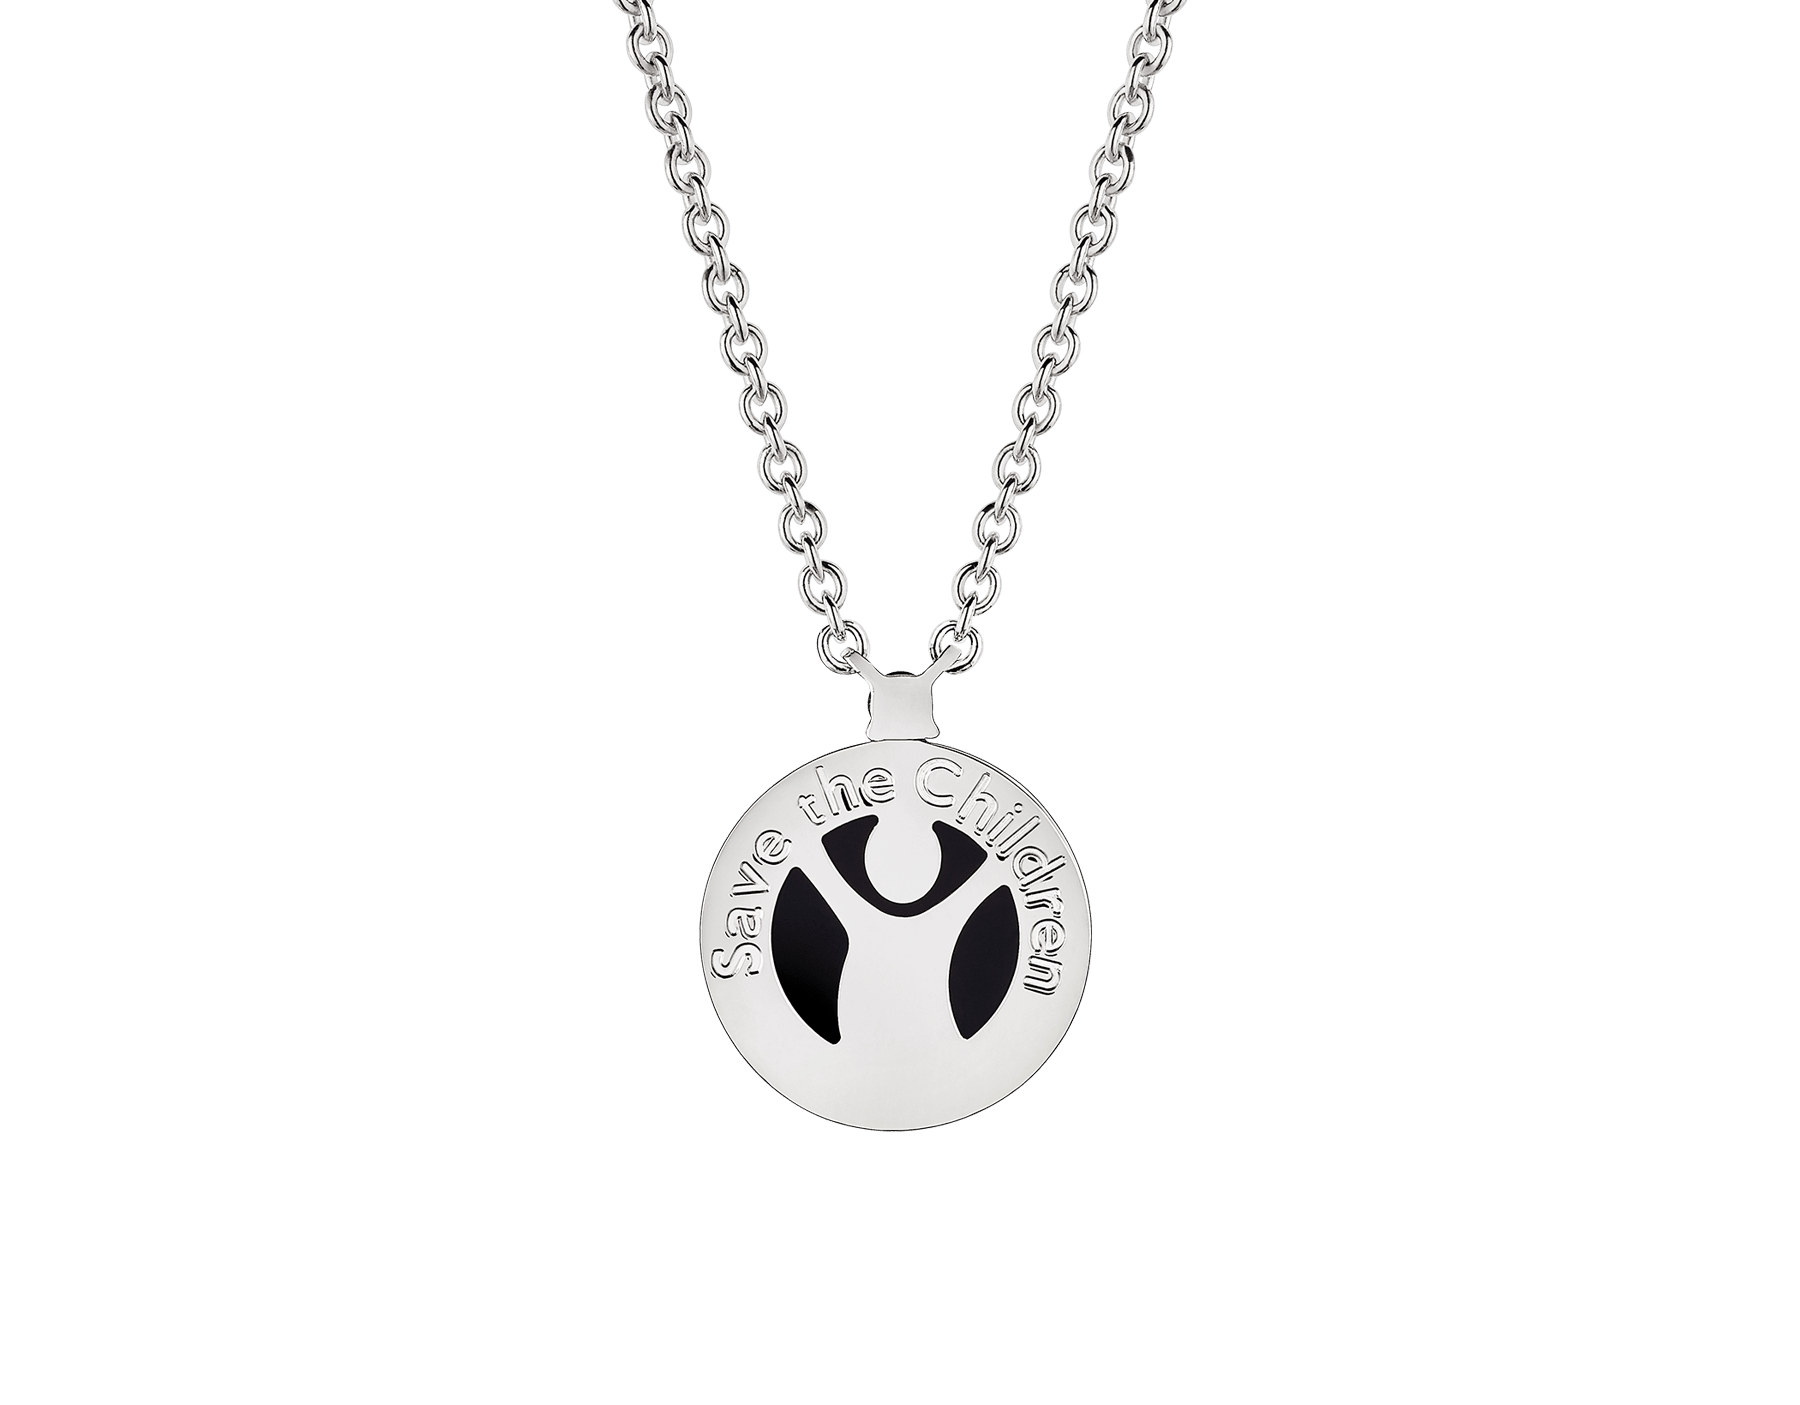 Collana Save the Children 10th Anniversary in argento 925 con elemento in onice e rubino. 356910 image 3